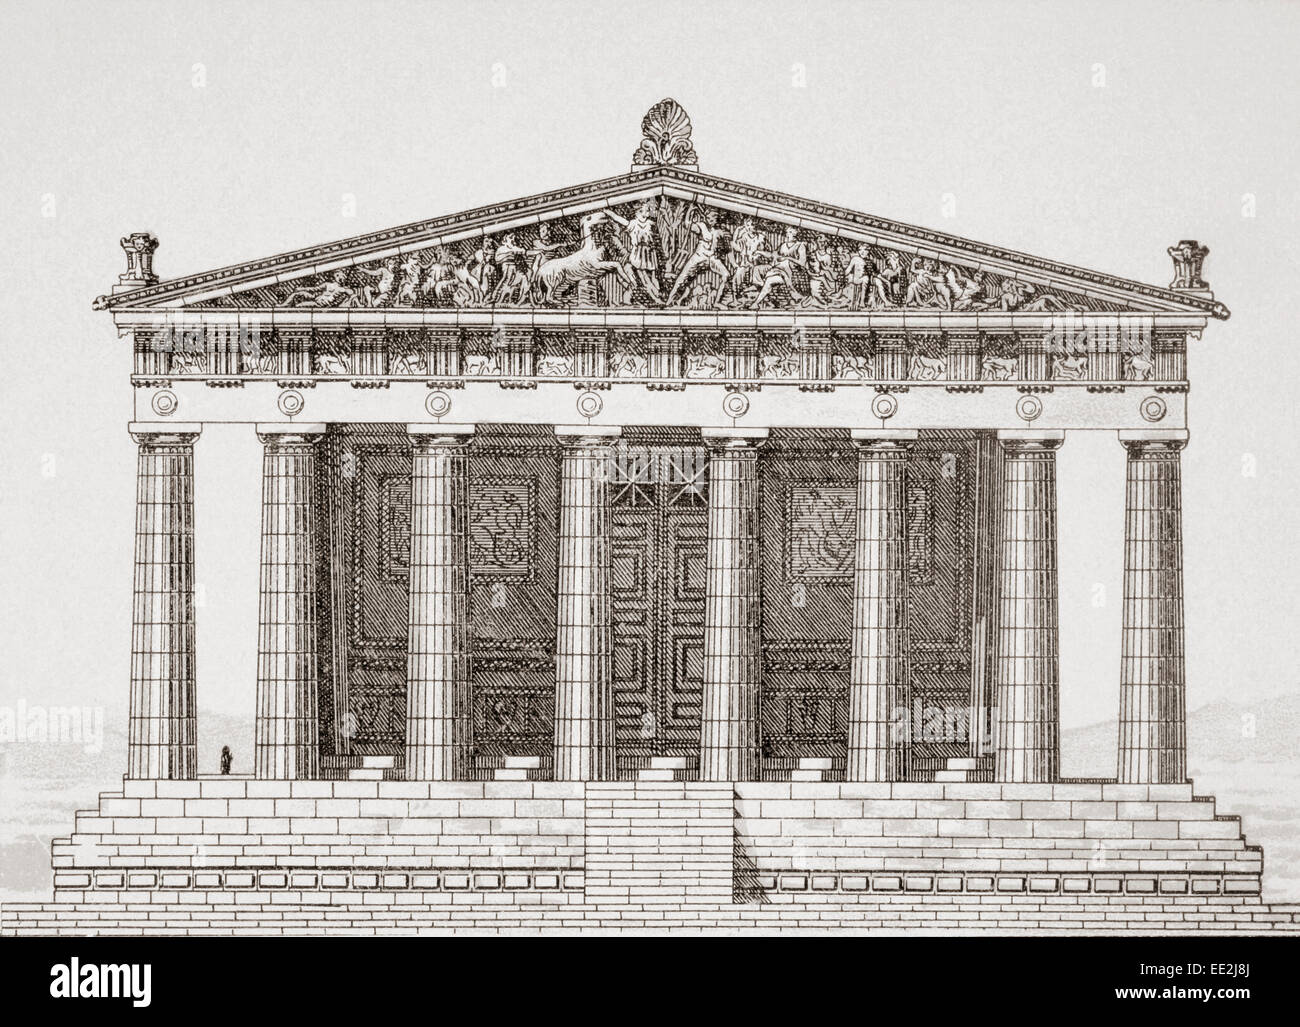 Reconstruction drawing of the Parthenon temple in Athens ...